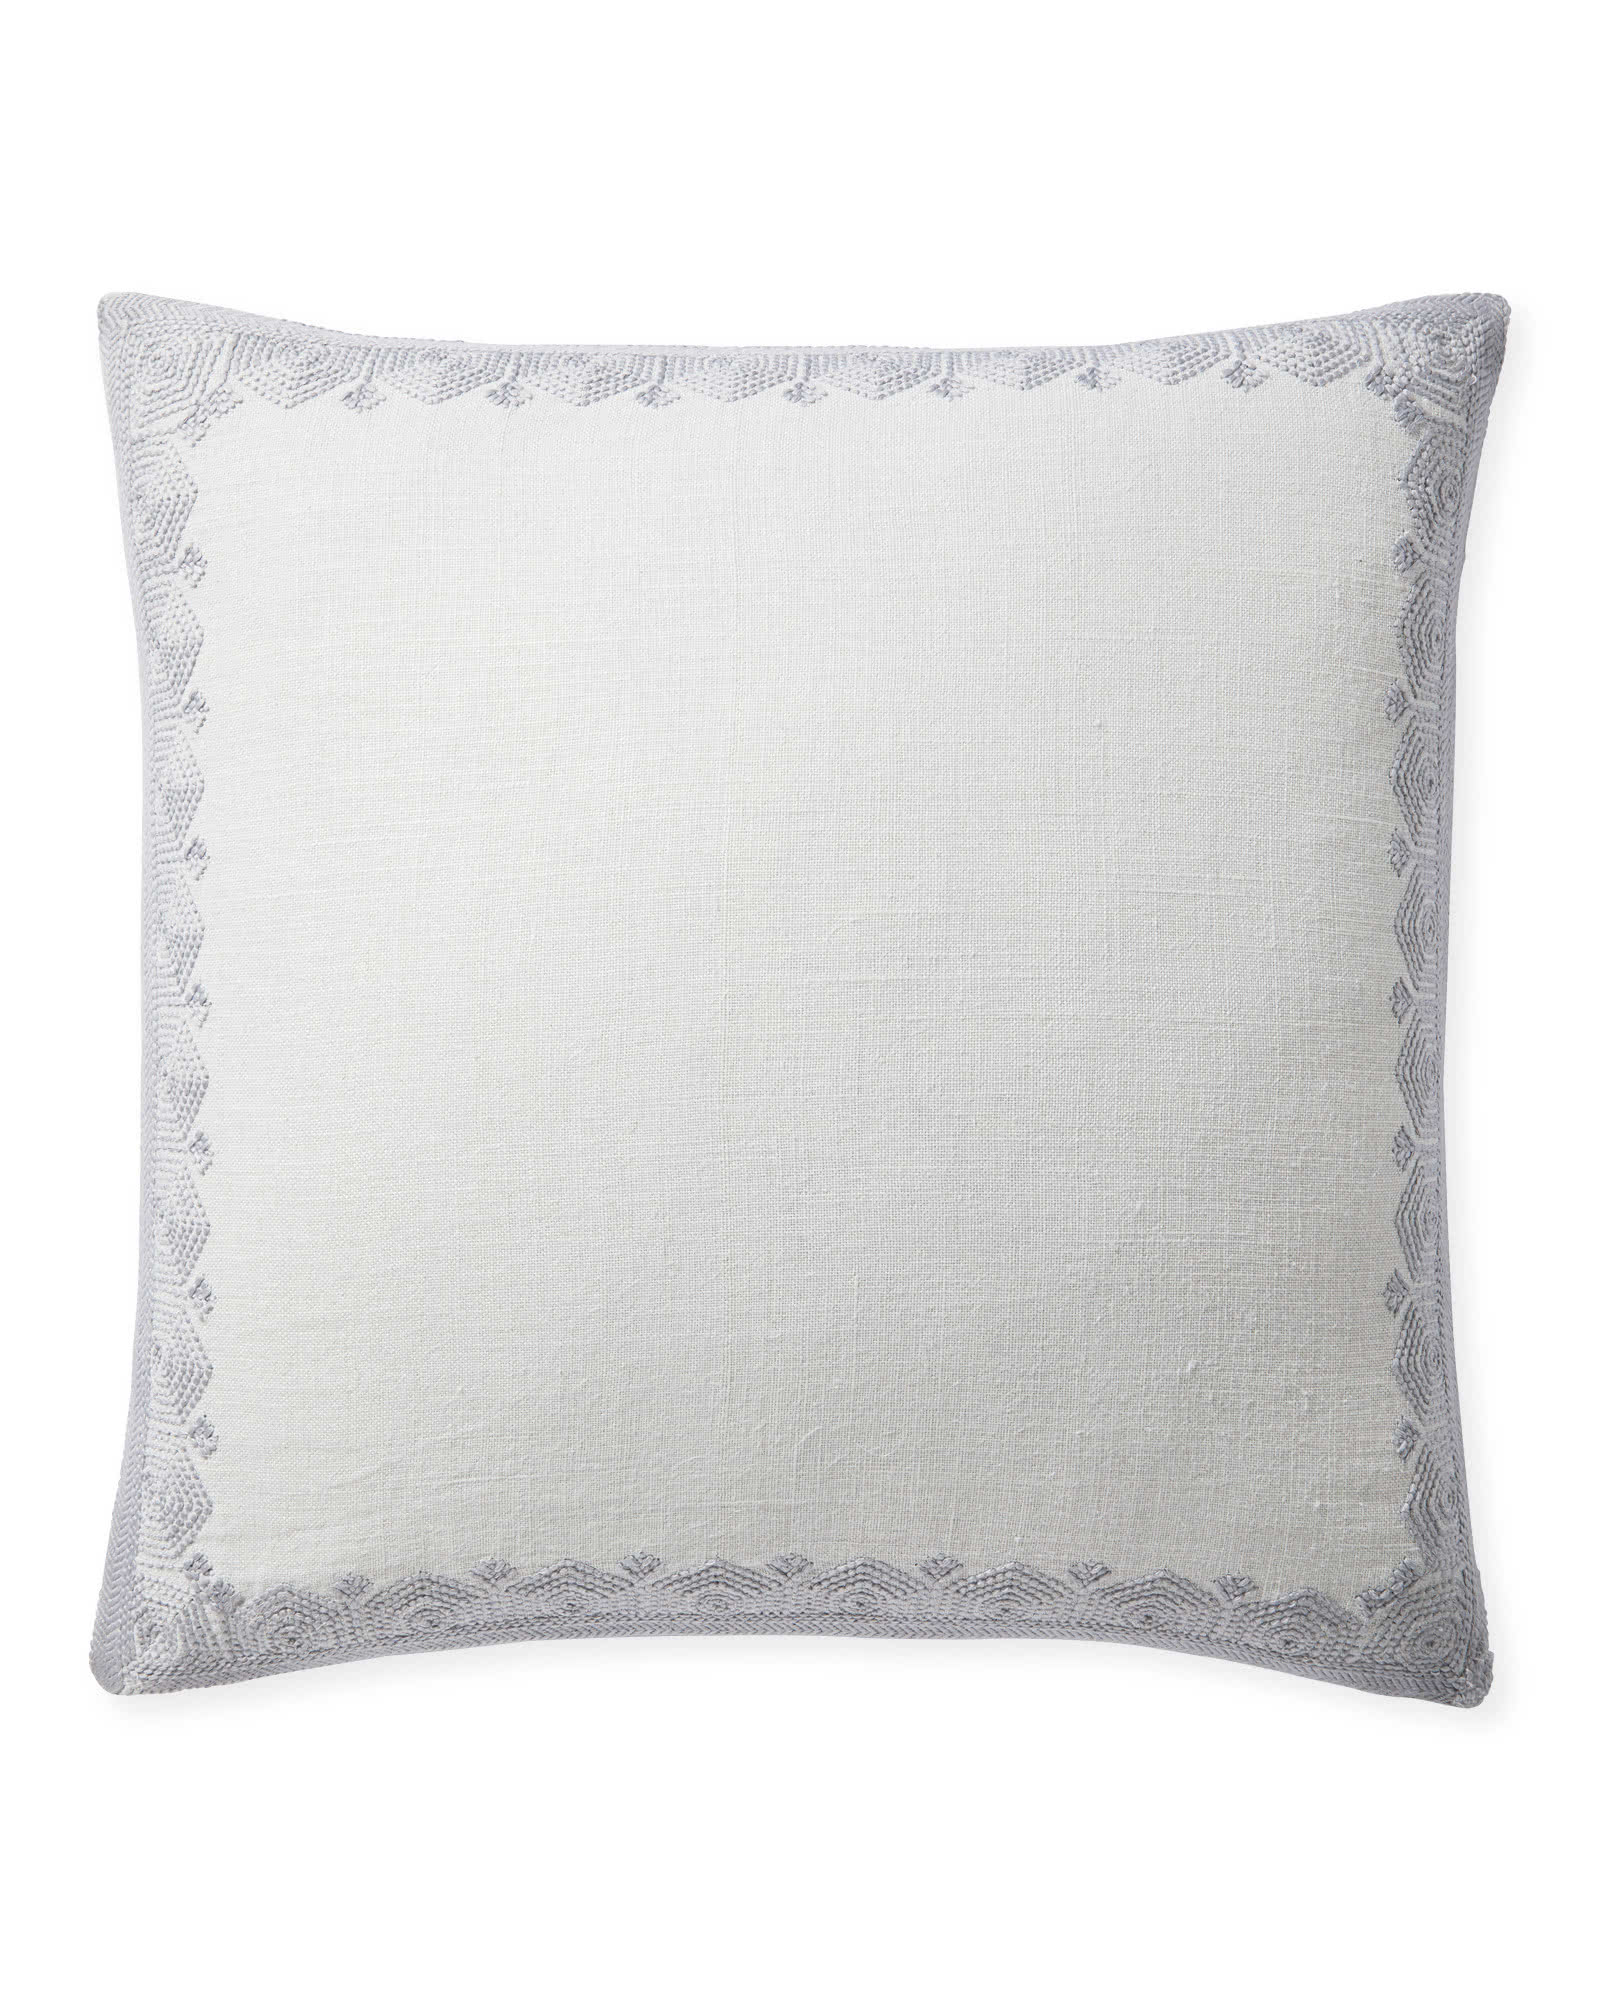 Olympia Pillow Cover, Fog